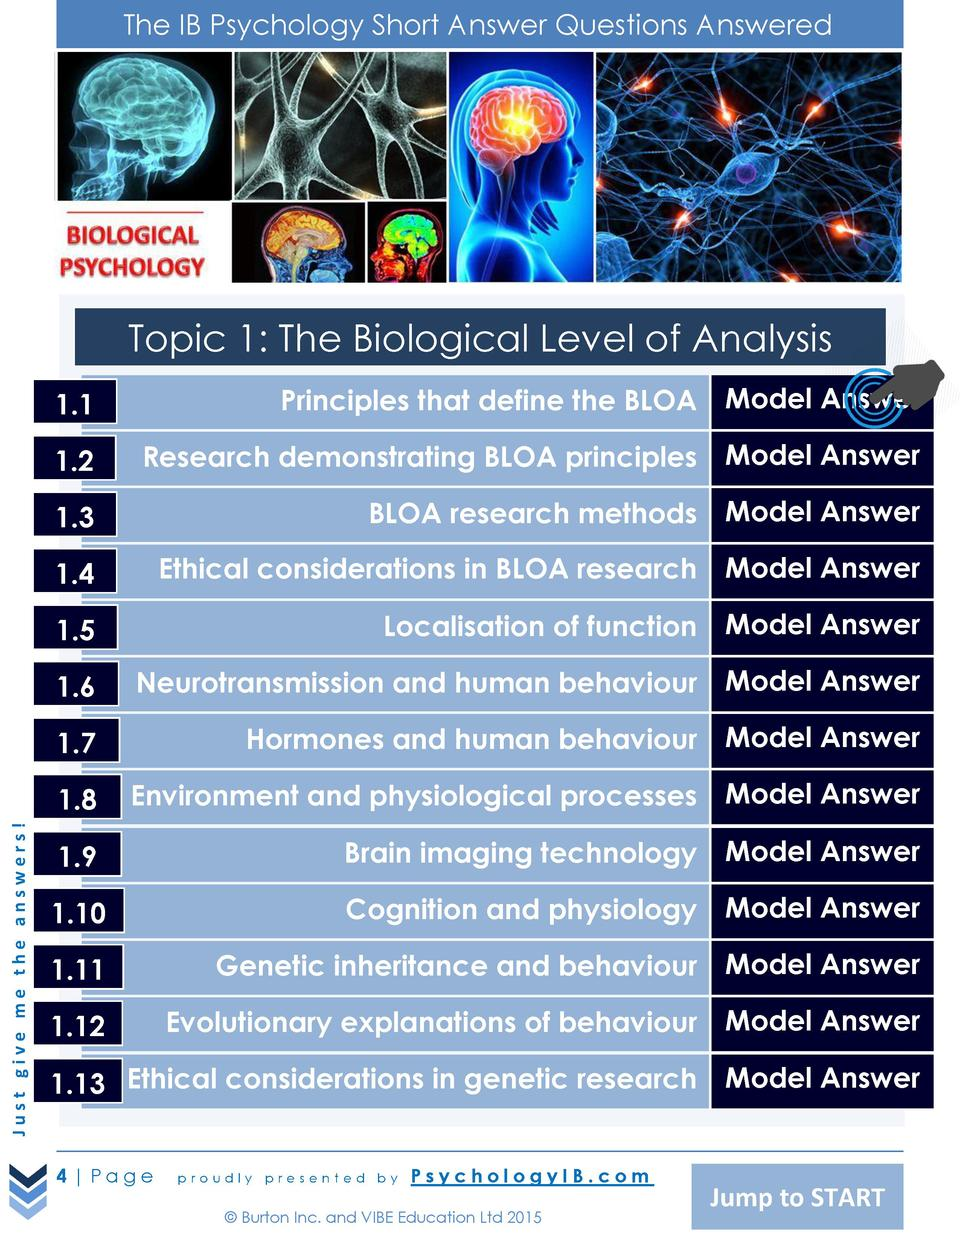 ib psychology bloa saqs com the ib psychology short answer questions answered topic 1 the biological level of analysis principles that